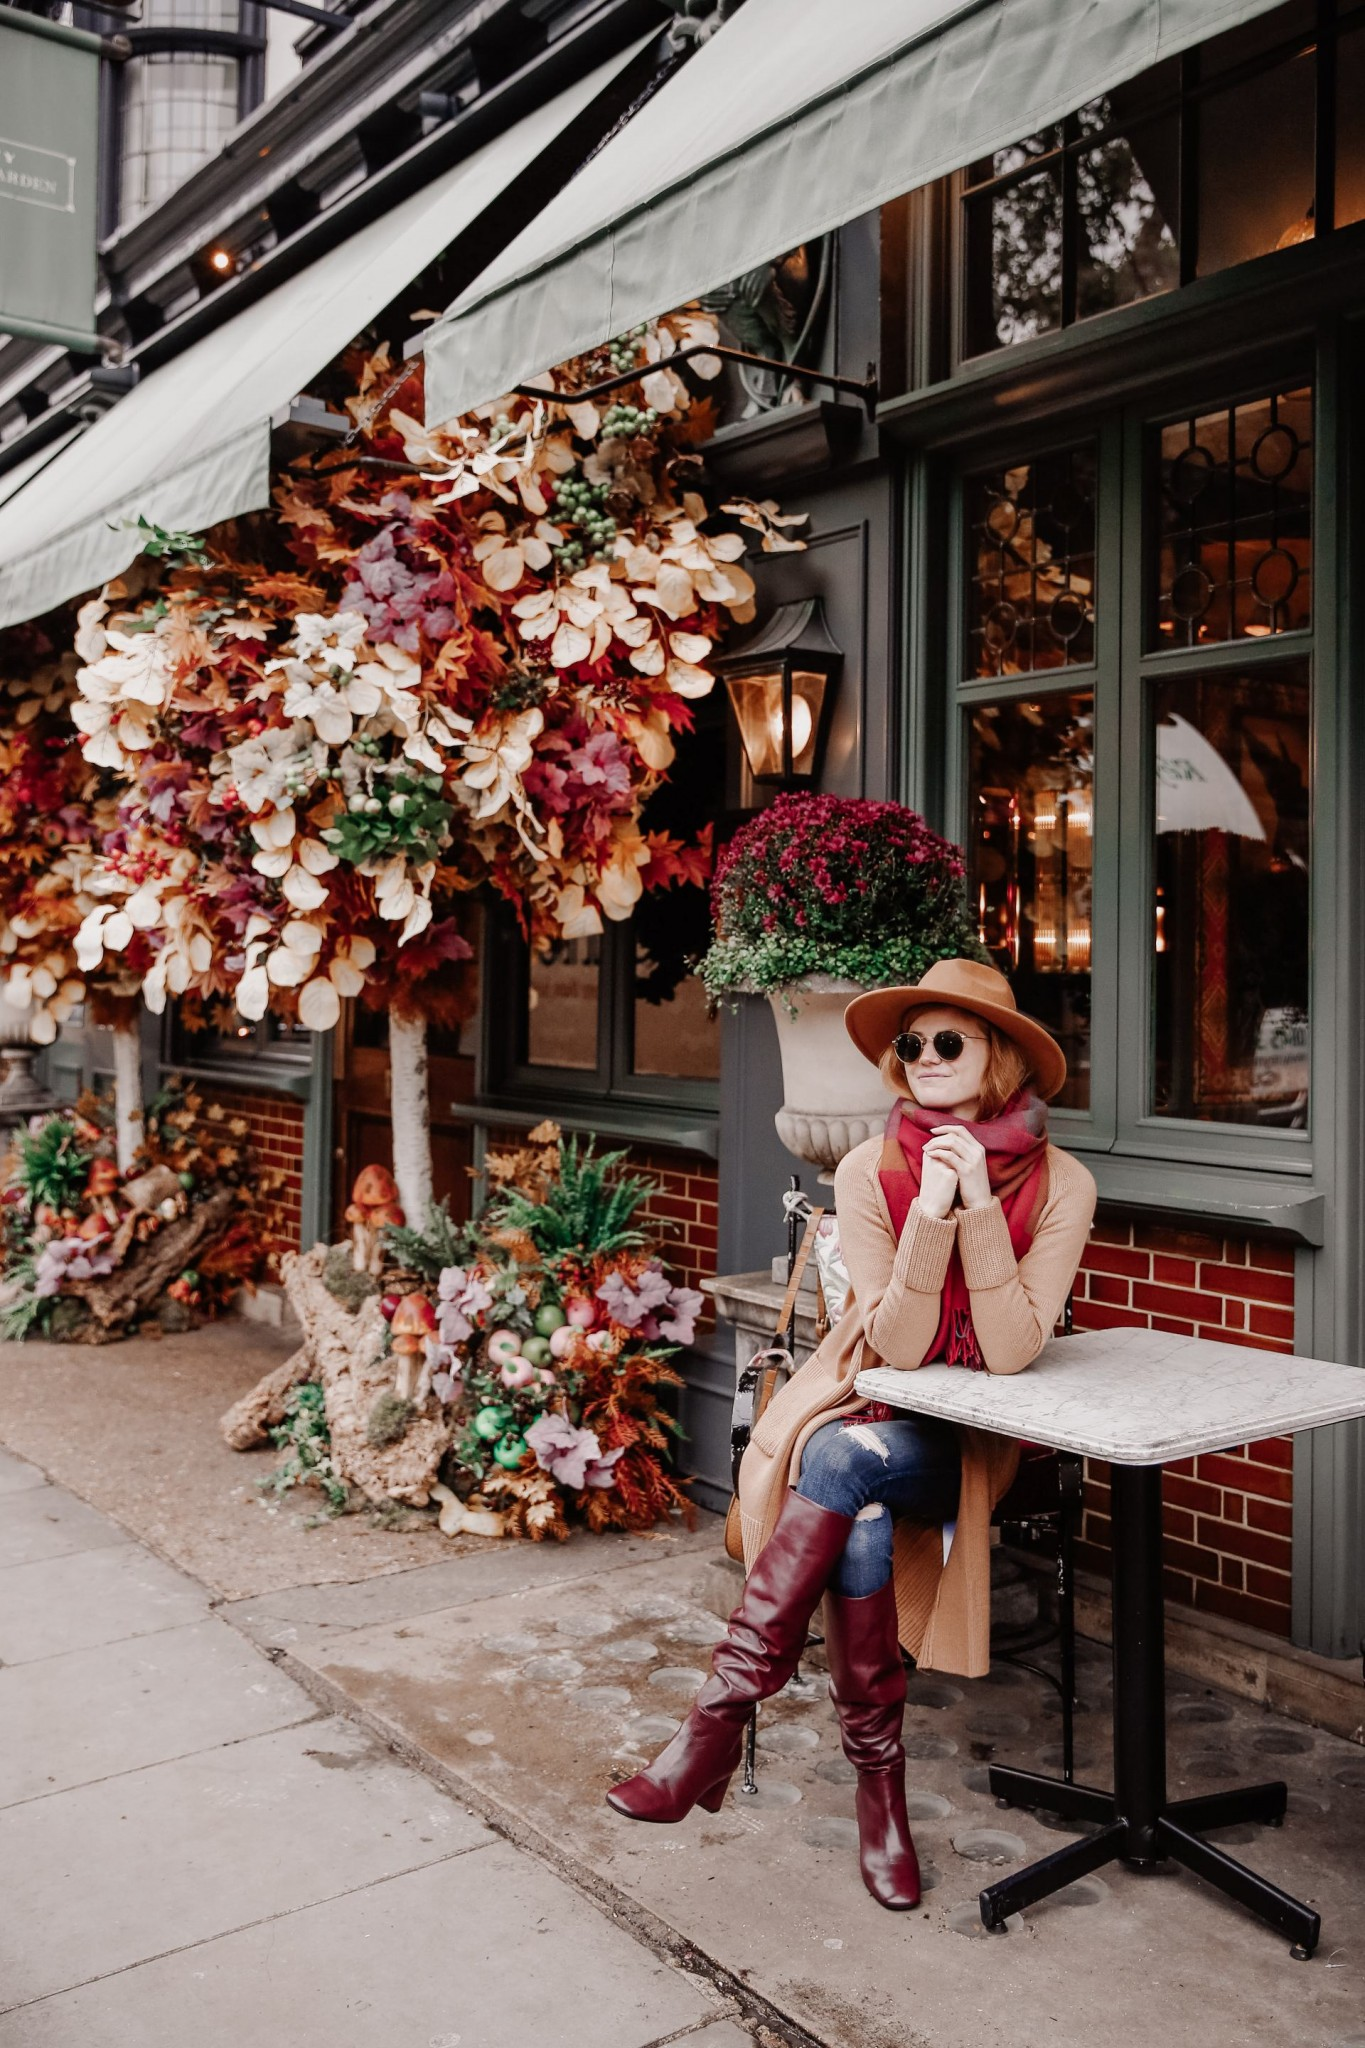 Lifestyle blogger Mollie Moore shares a casual Thanksgiving outfit idea